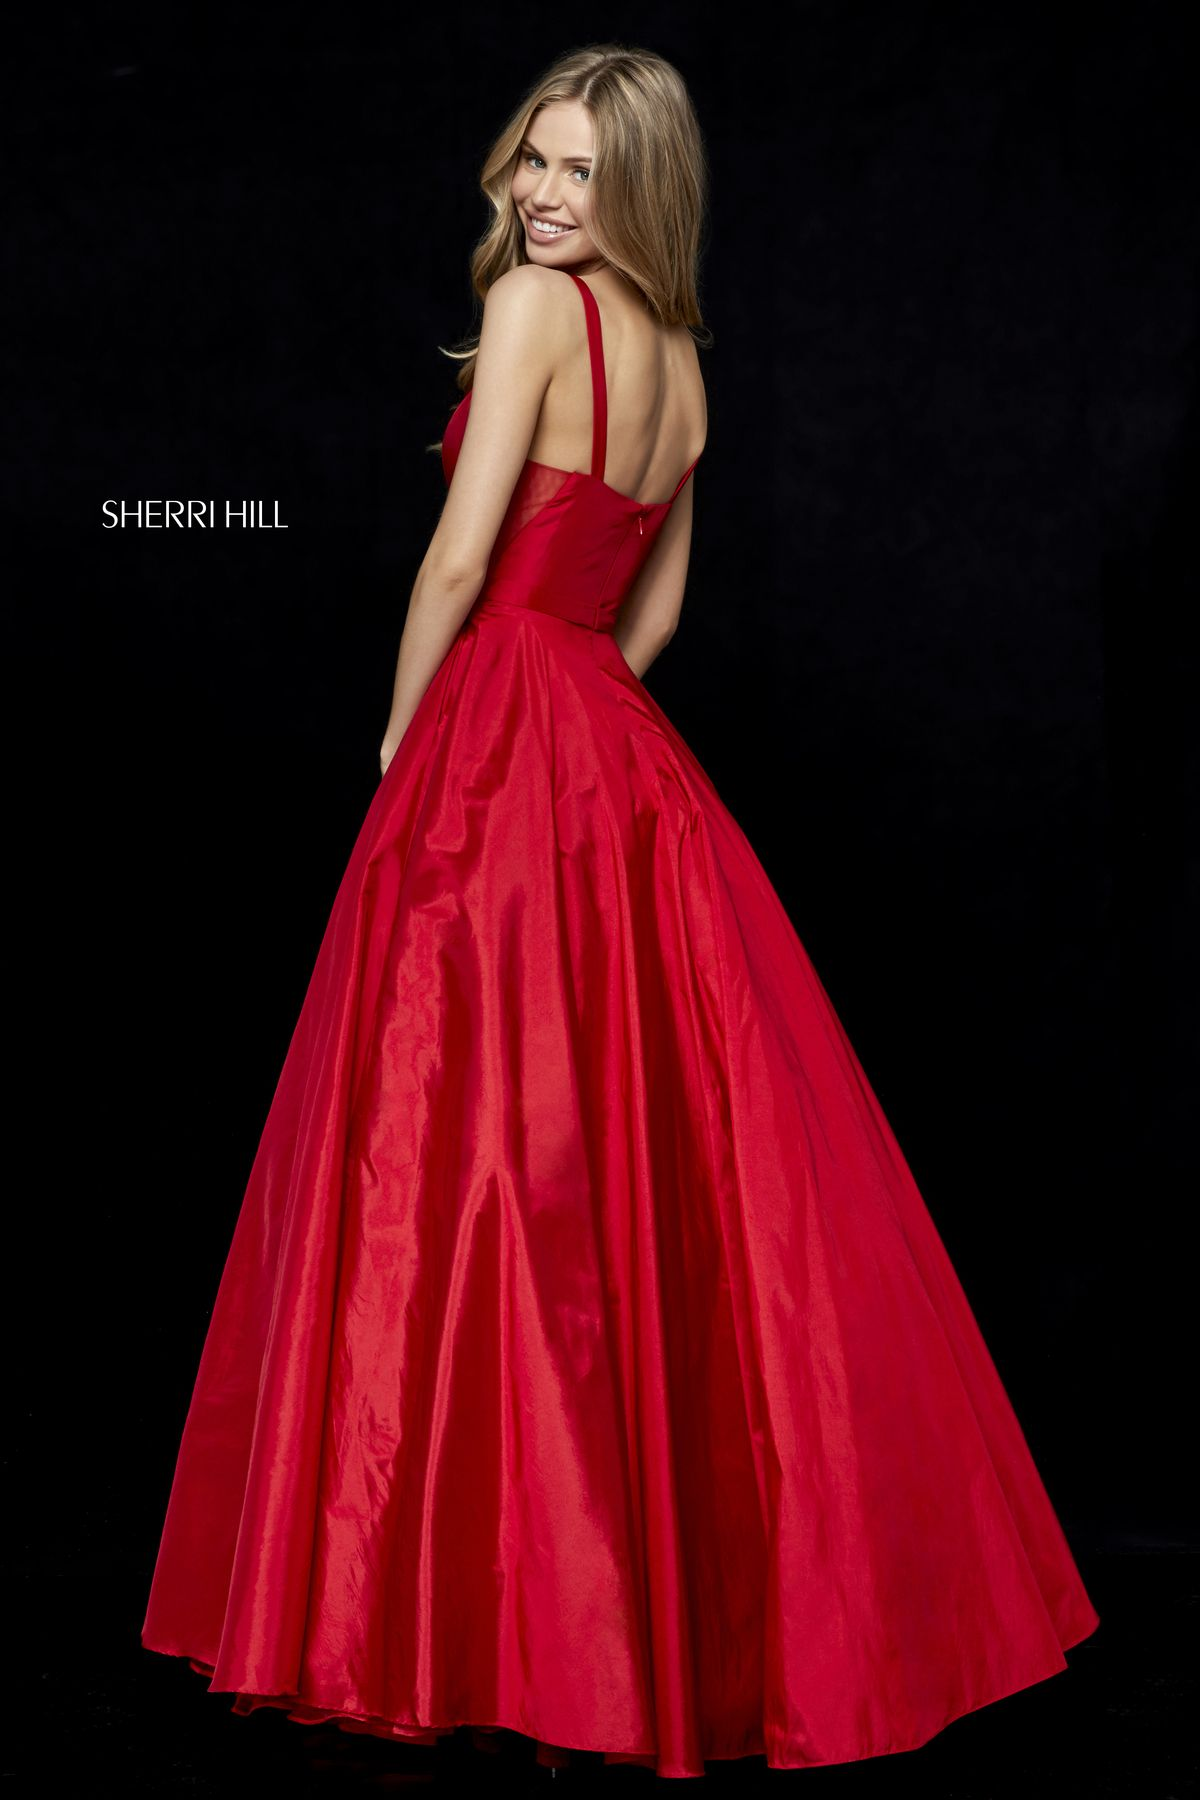 Style in fall collection pinterest sherri hill